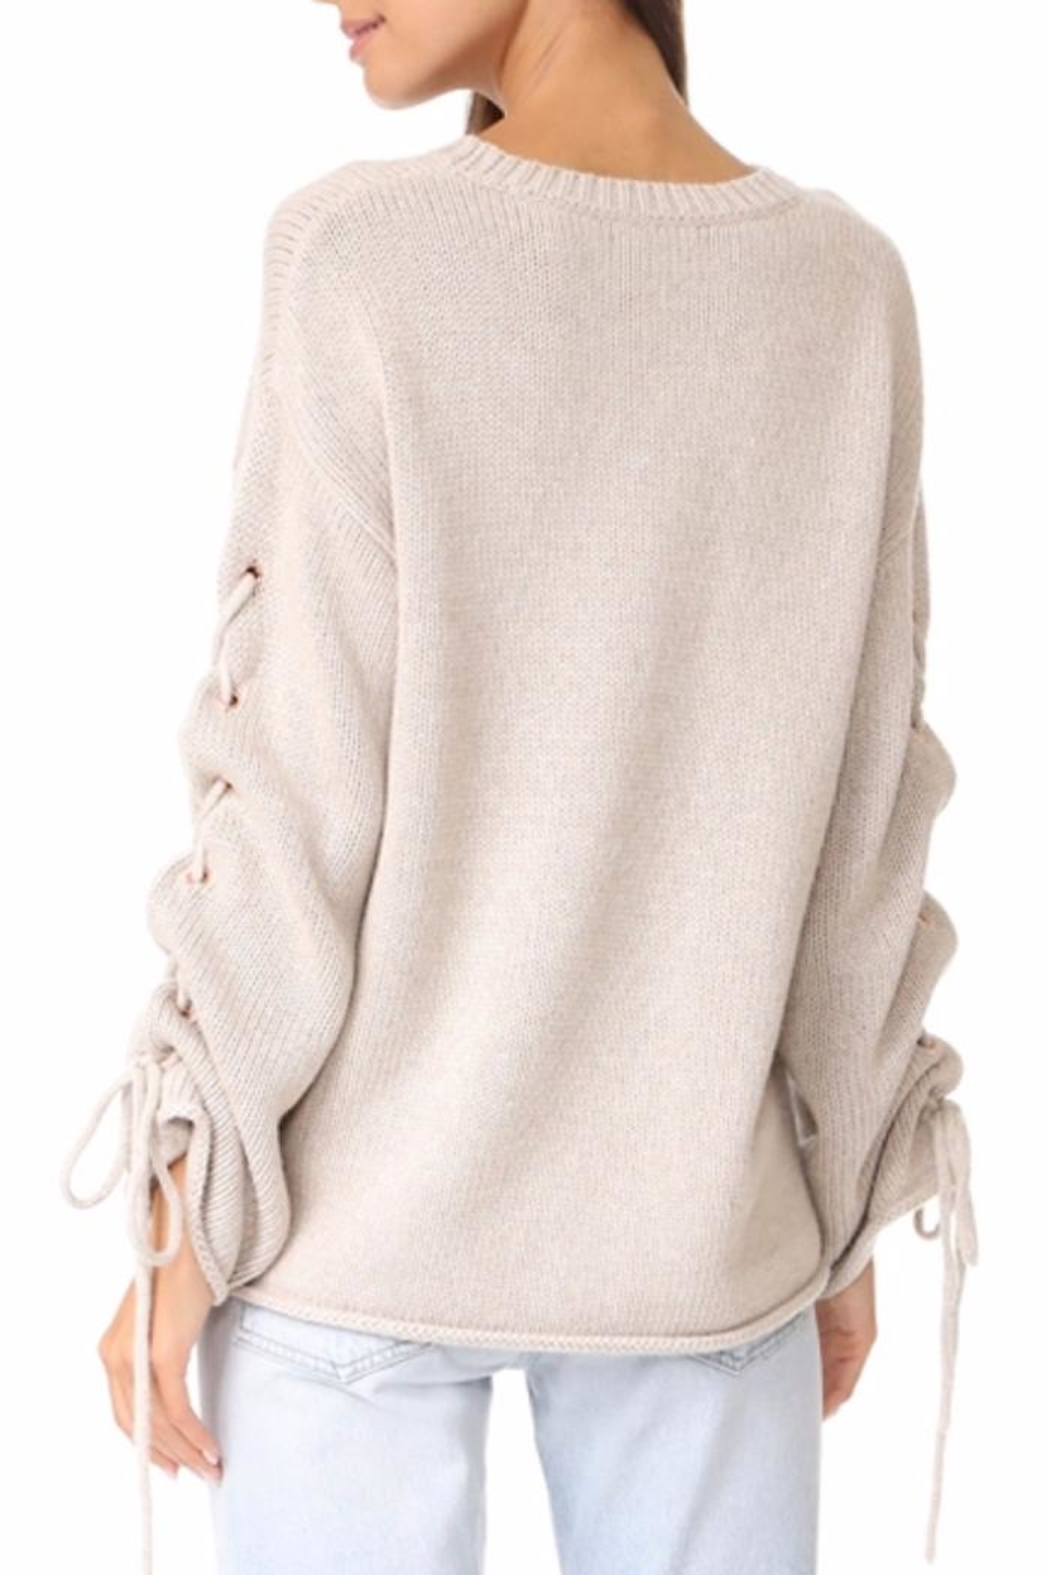 People Outfitter Ailbe Lace Up Sweater - Front Full Image